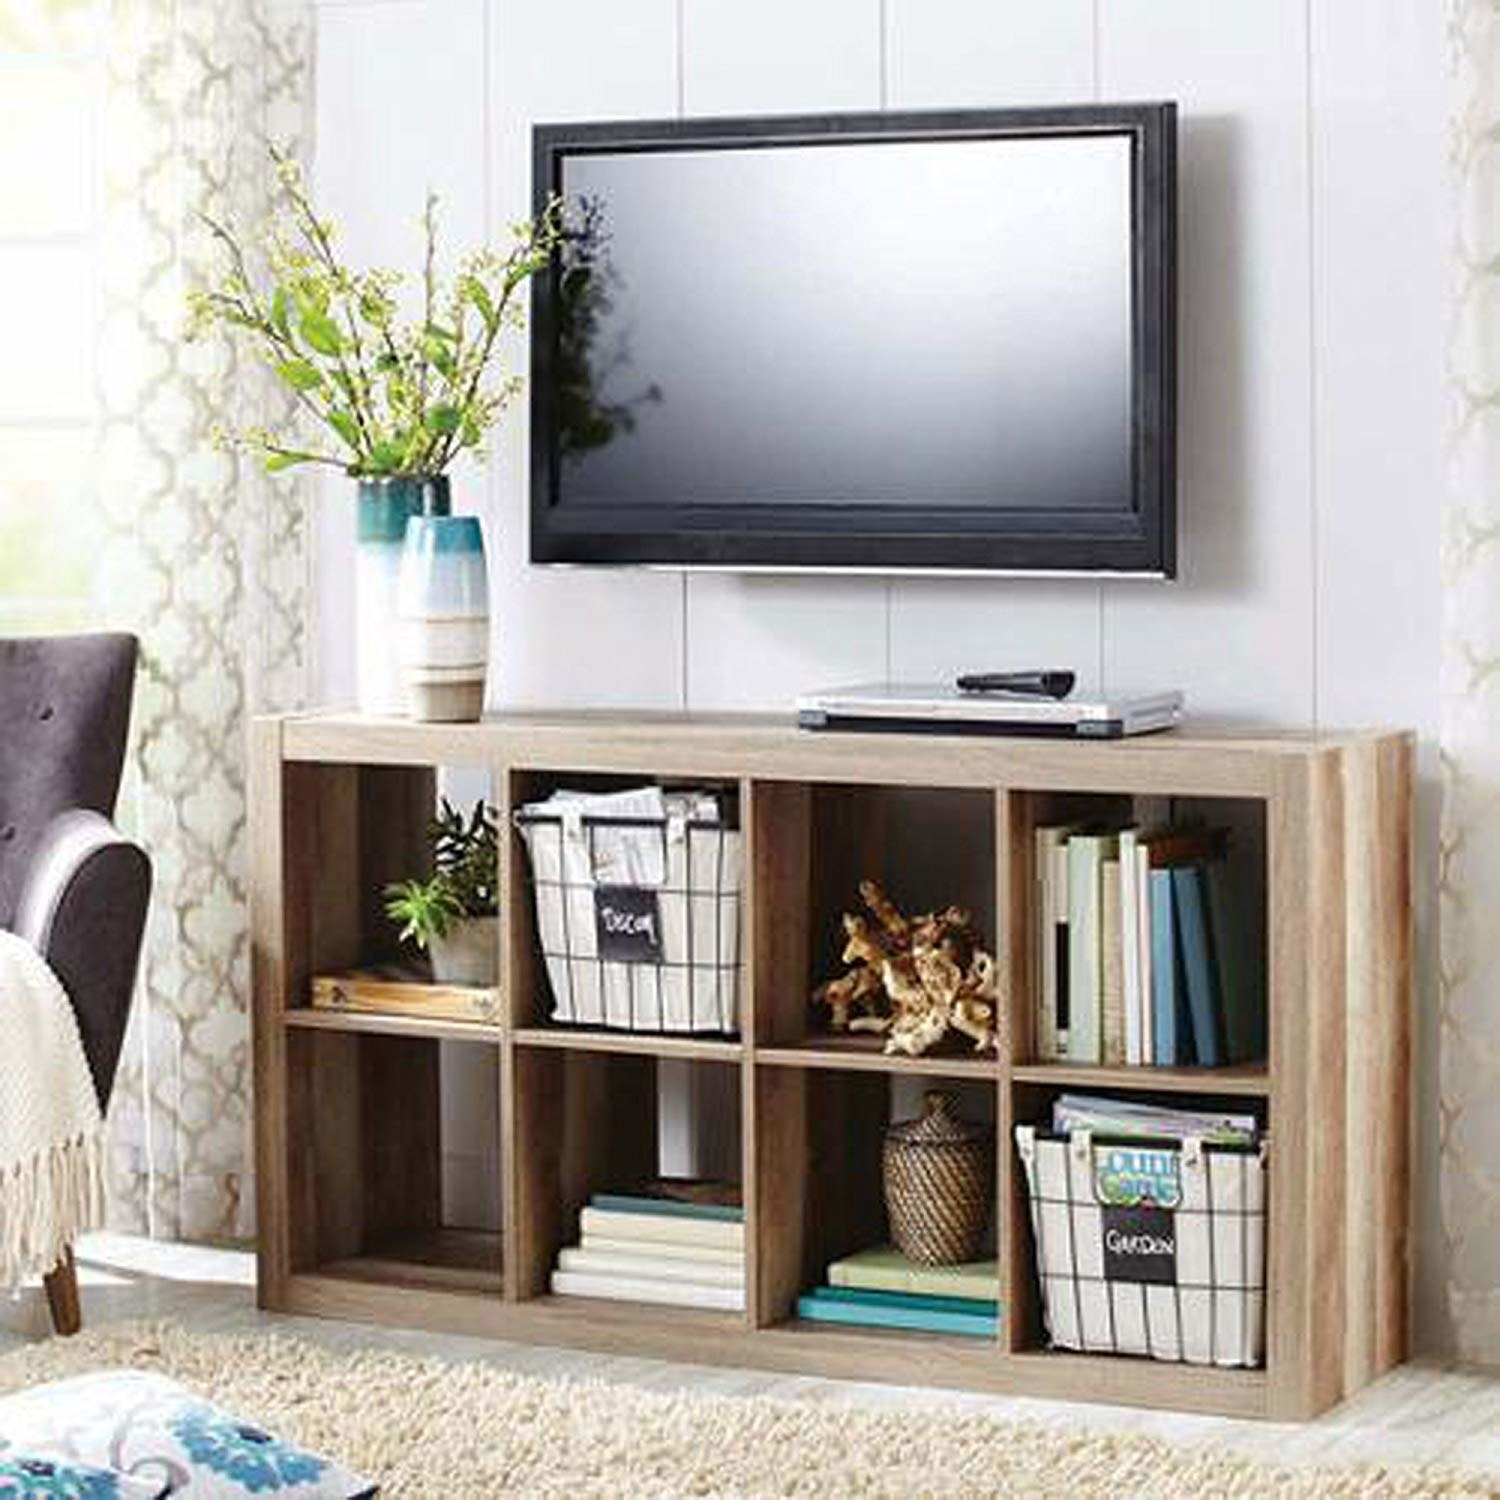 The modern Better Homes and Gardens eight-cube shelf in beige.